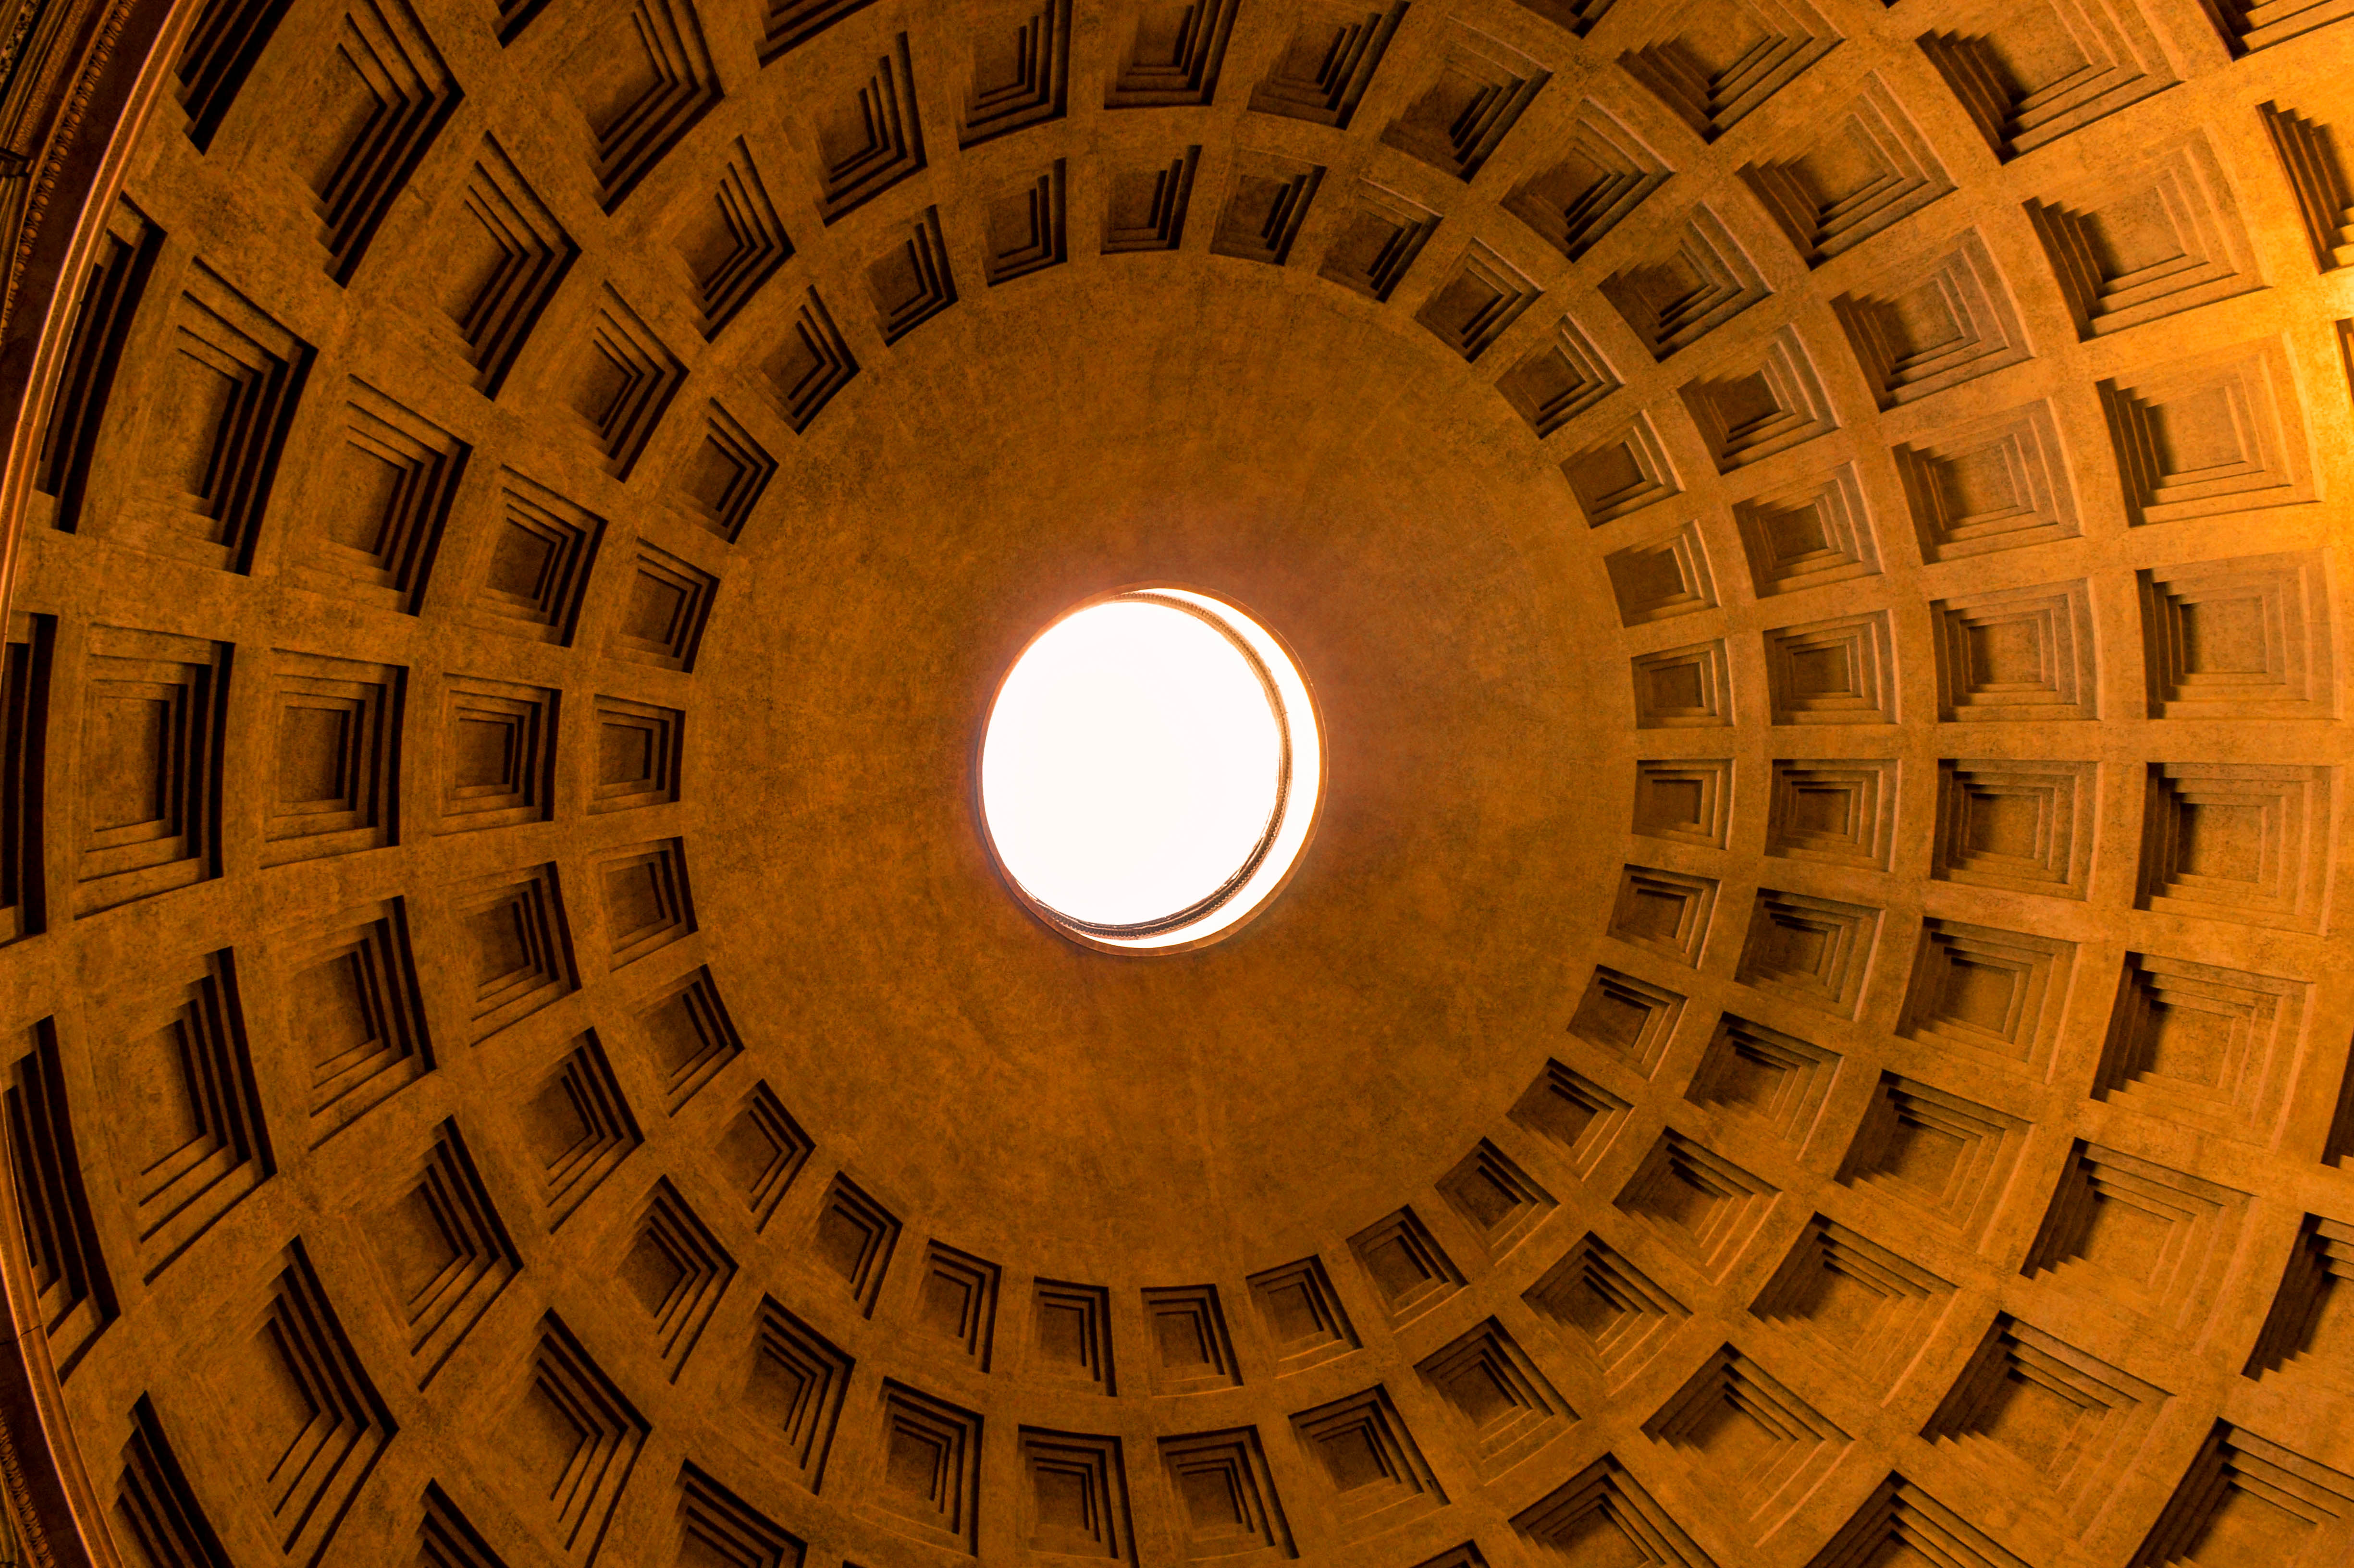 Pantheon is one of the best known and best preserved temples of ancient Rome